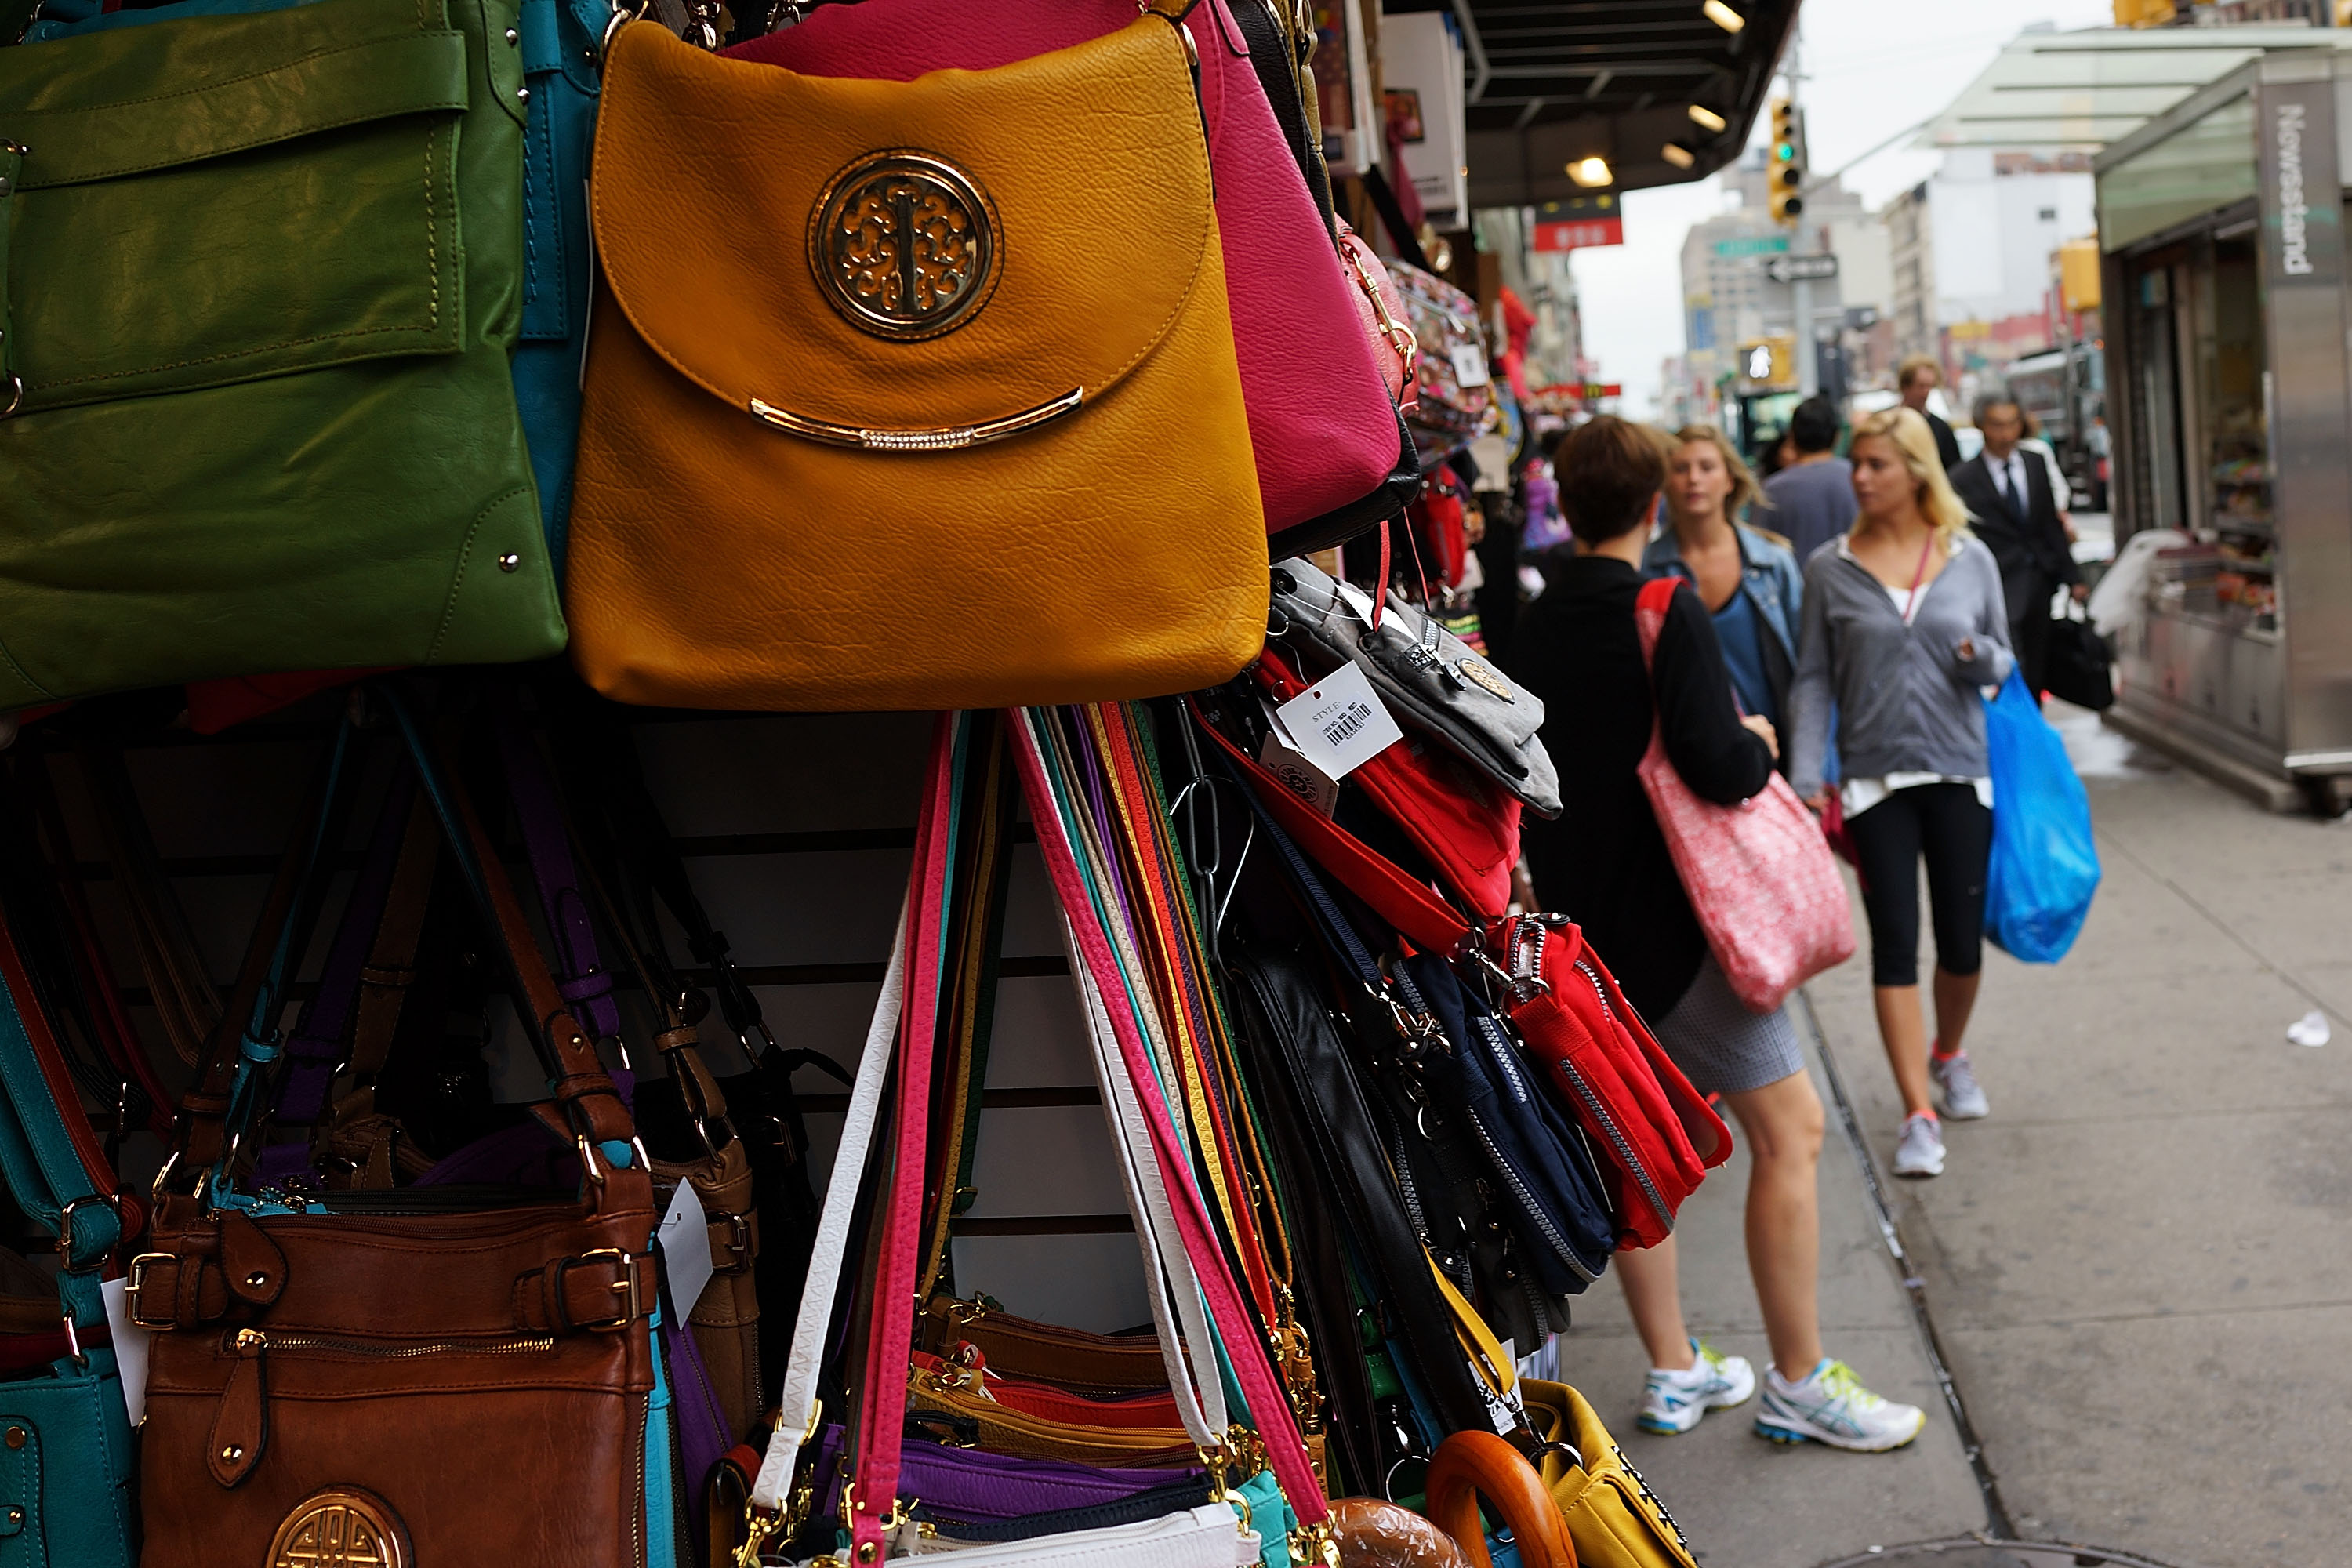 NYC Council To Consider Harsher Measures To Control Counterfeit Good Industry